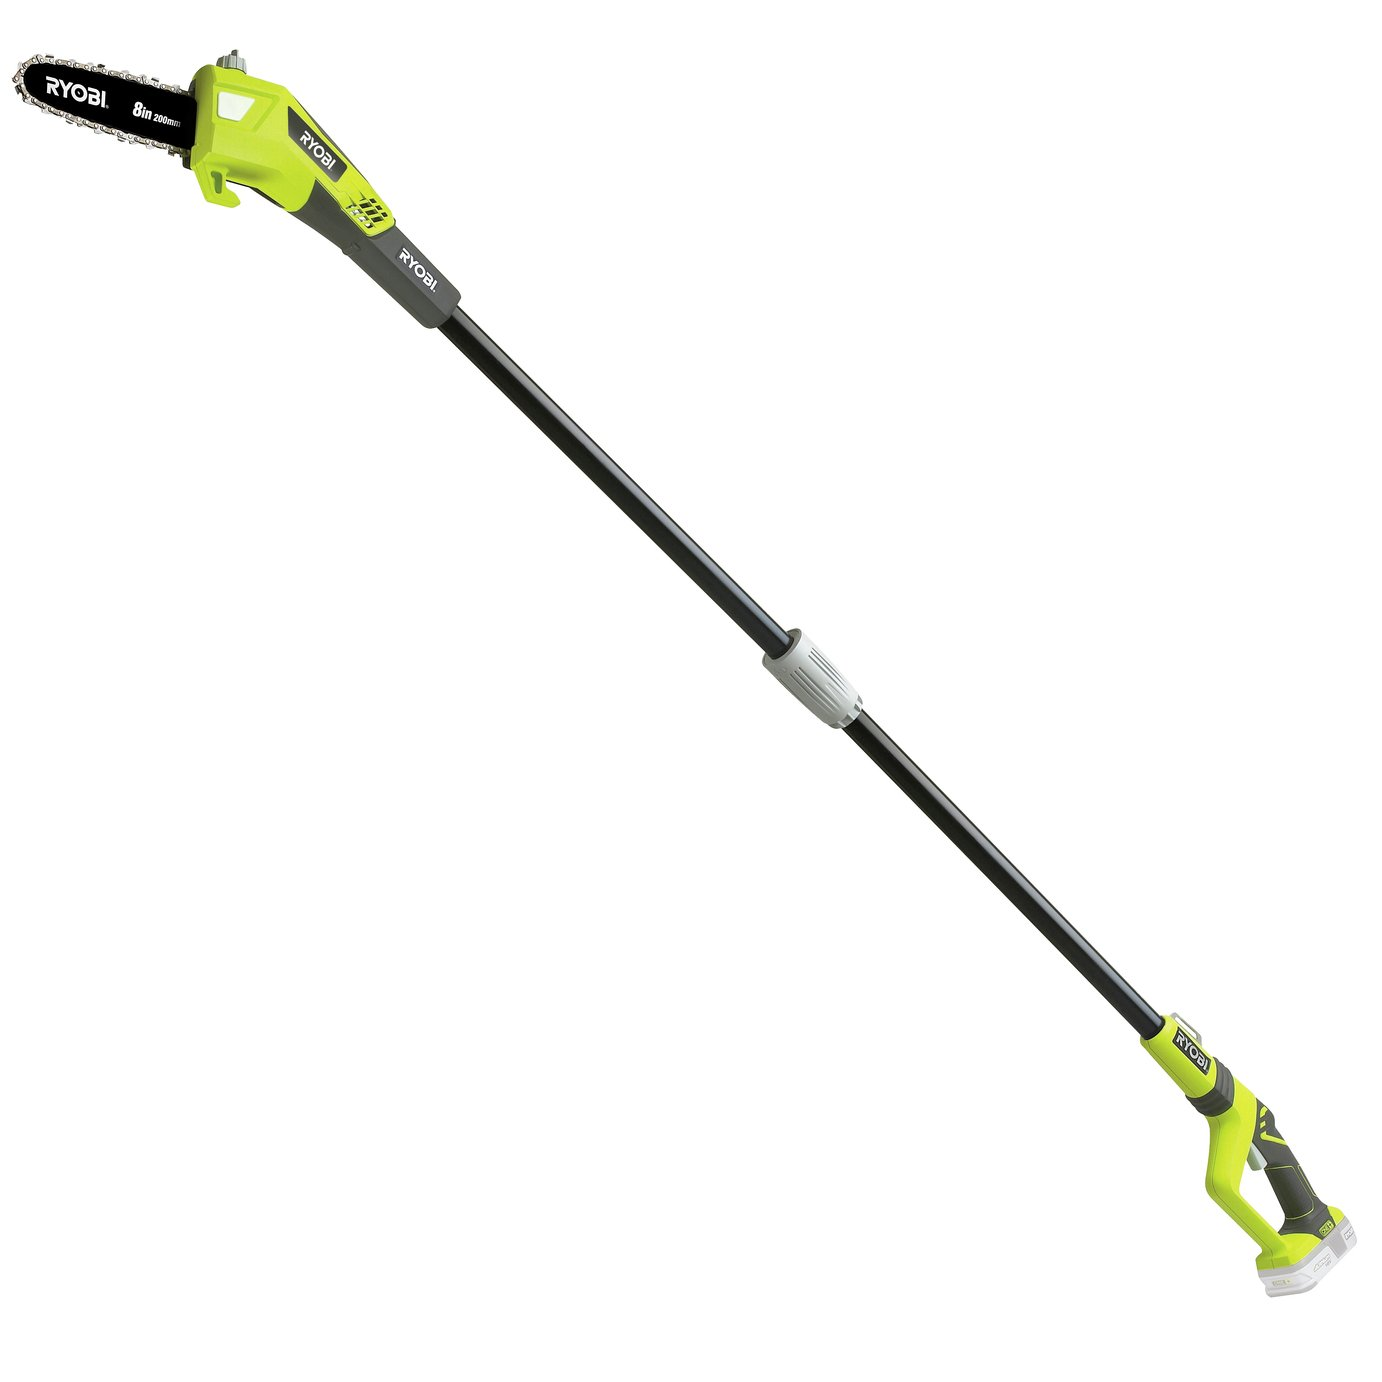 Ryobi OPP1820 ONE+ Pole Saw Bare Tool - 18V